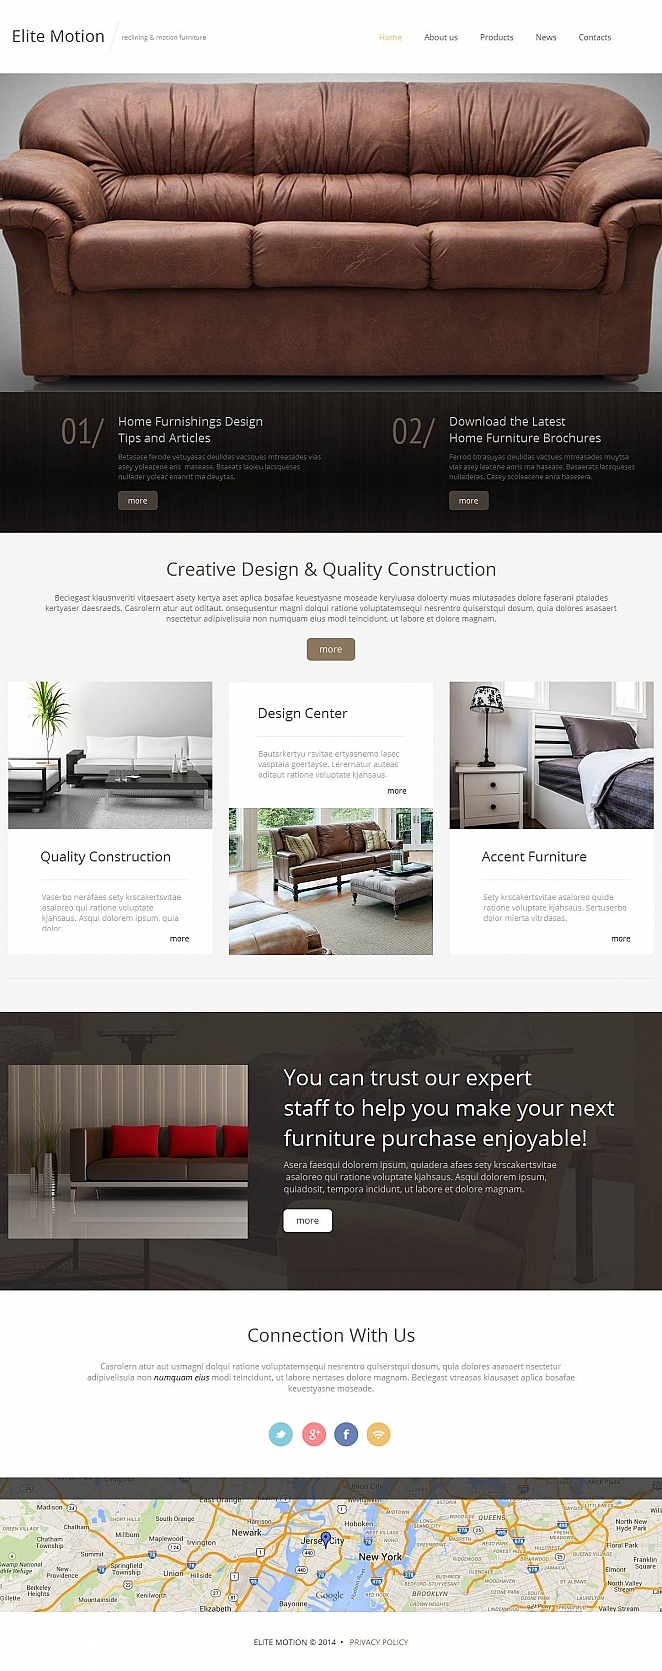 Reclining Furniture Website Template with Black and White Design - image